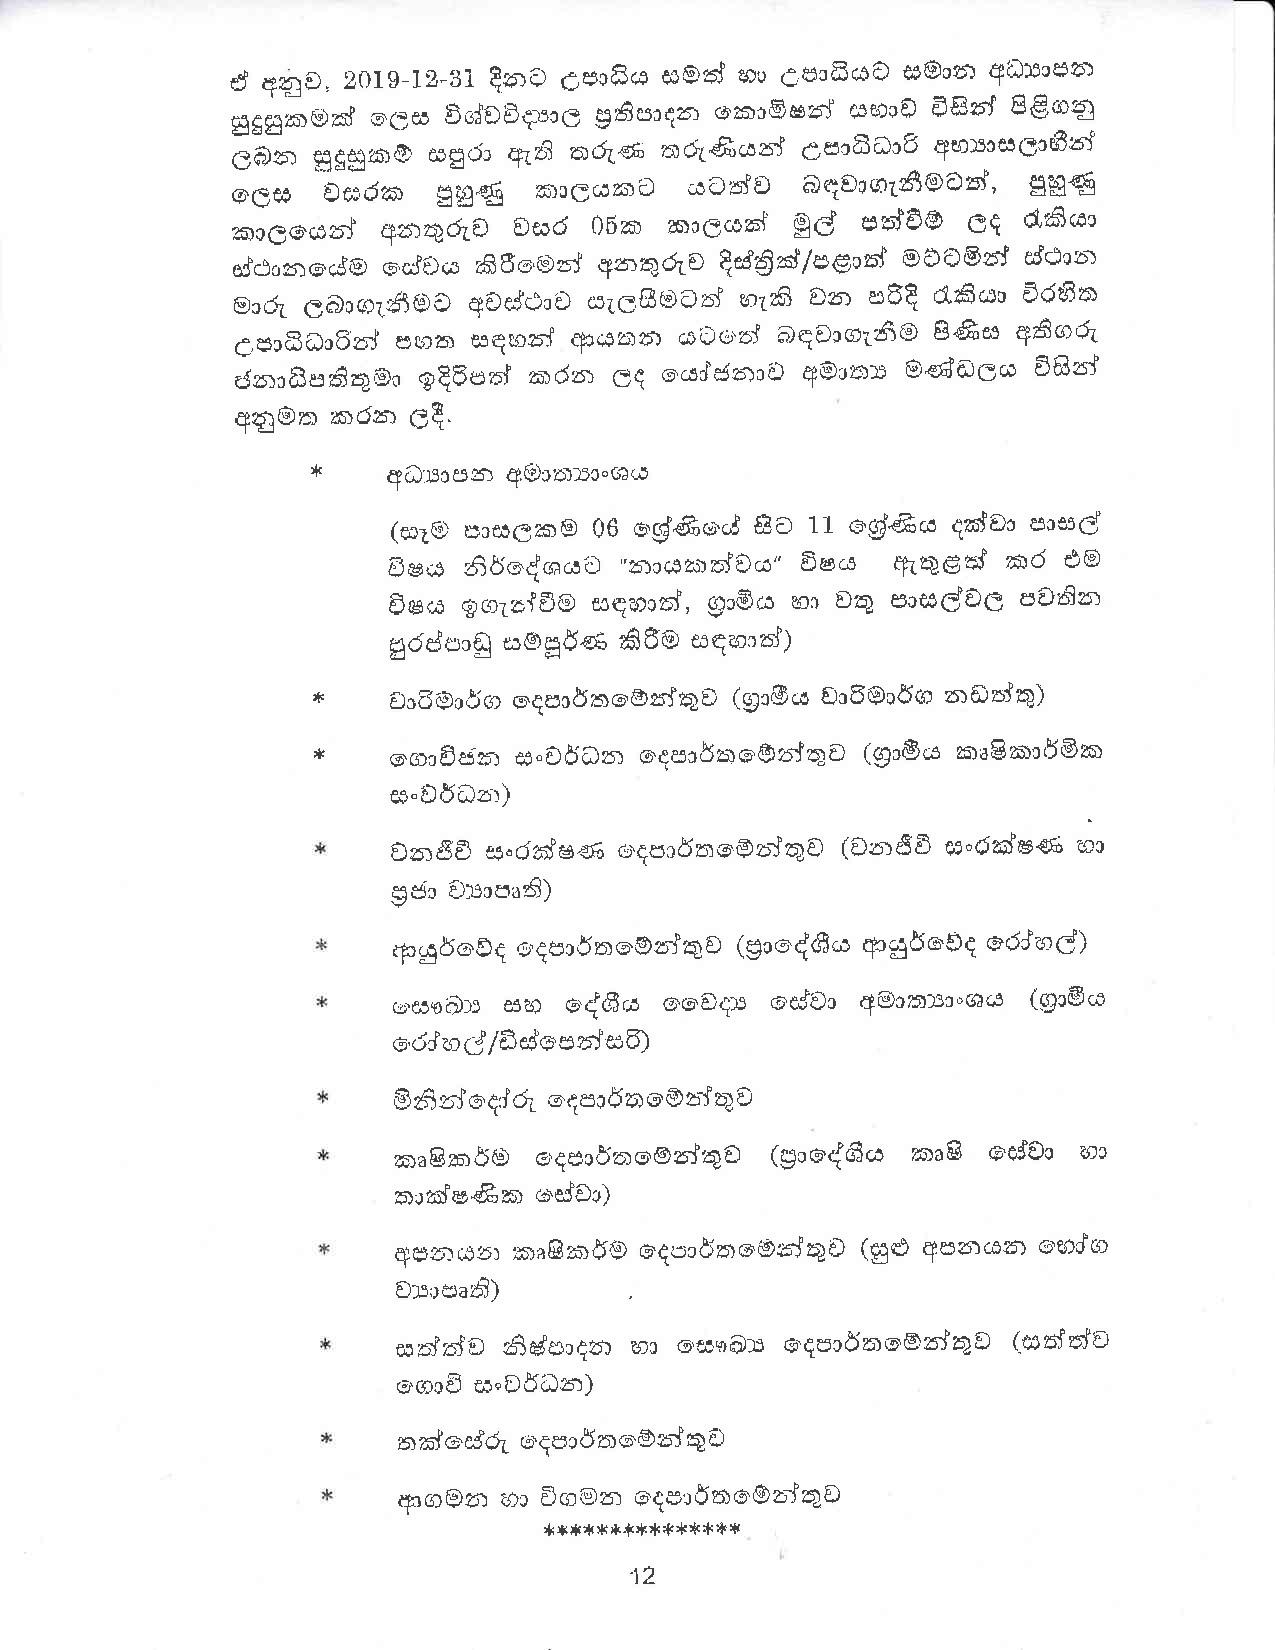 Cabinet Decision on 05.02.2020 page 012